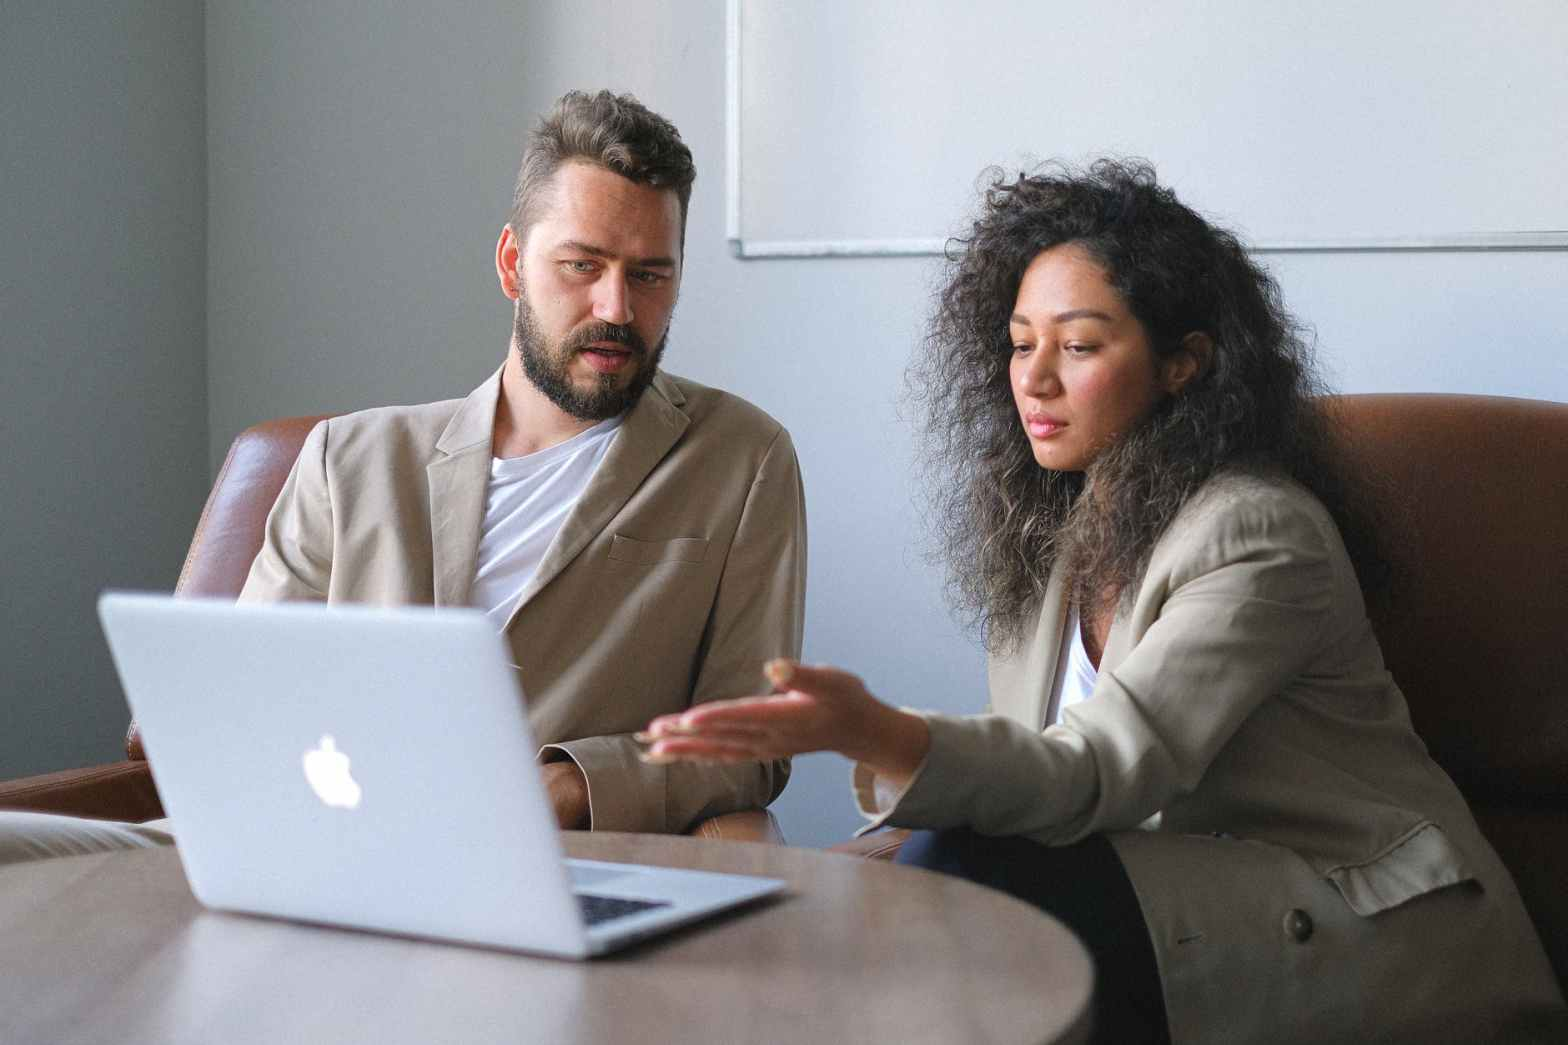 focused man working with female colleague in office